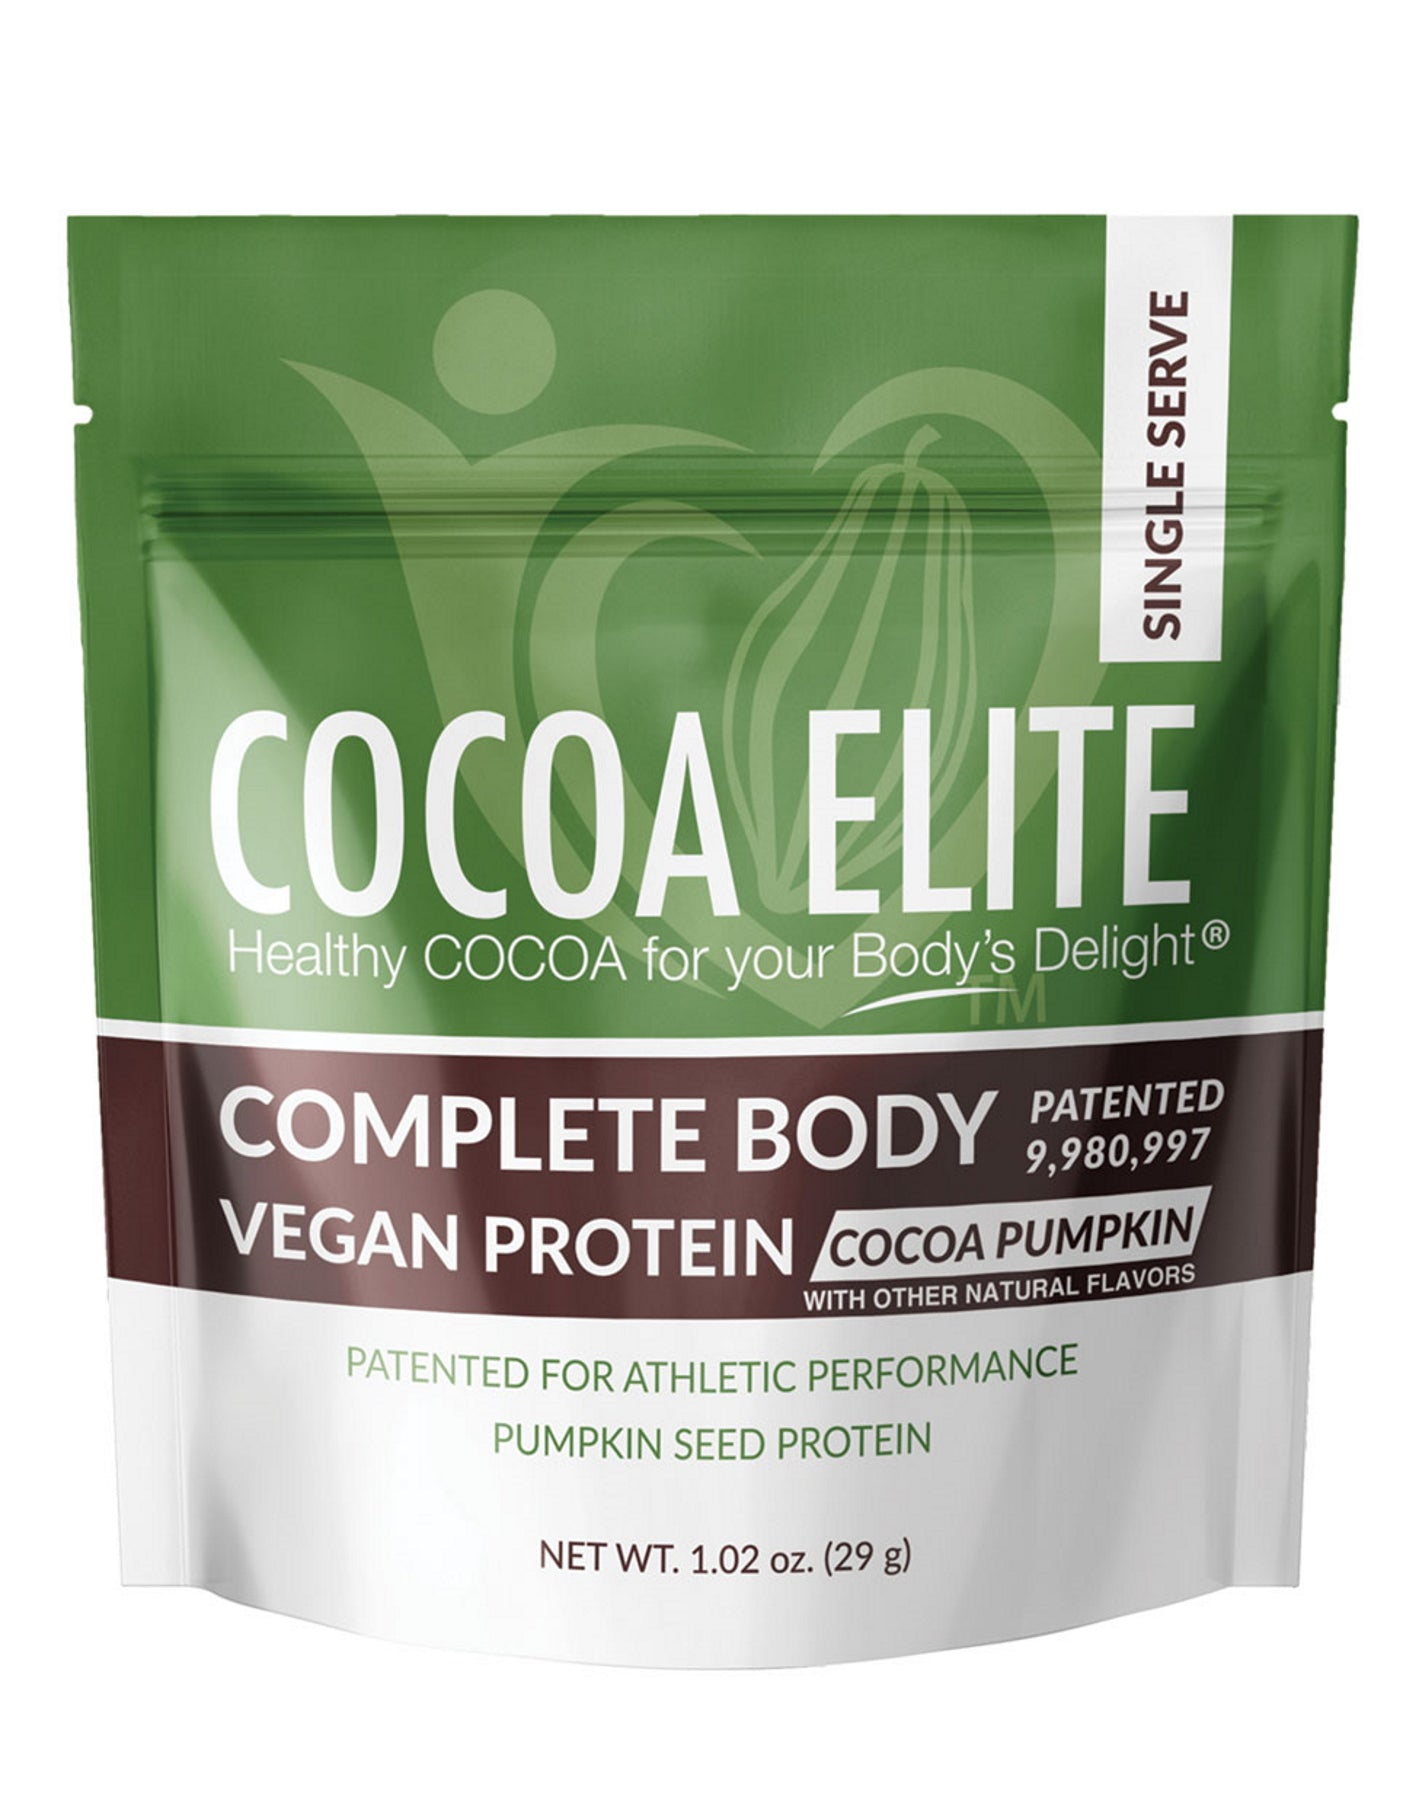 Vegan Protein Cocoa Pumpkin - Single Serve